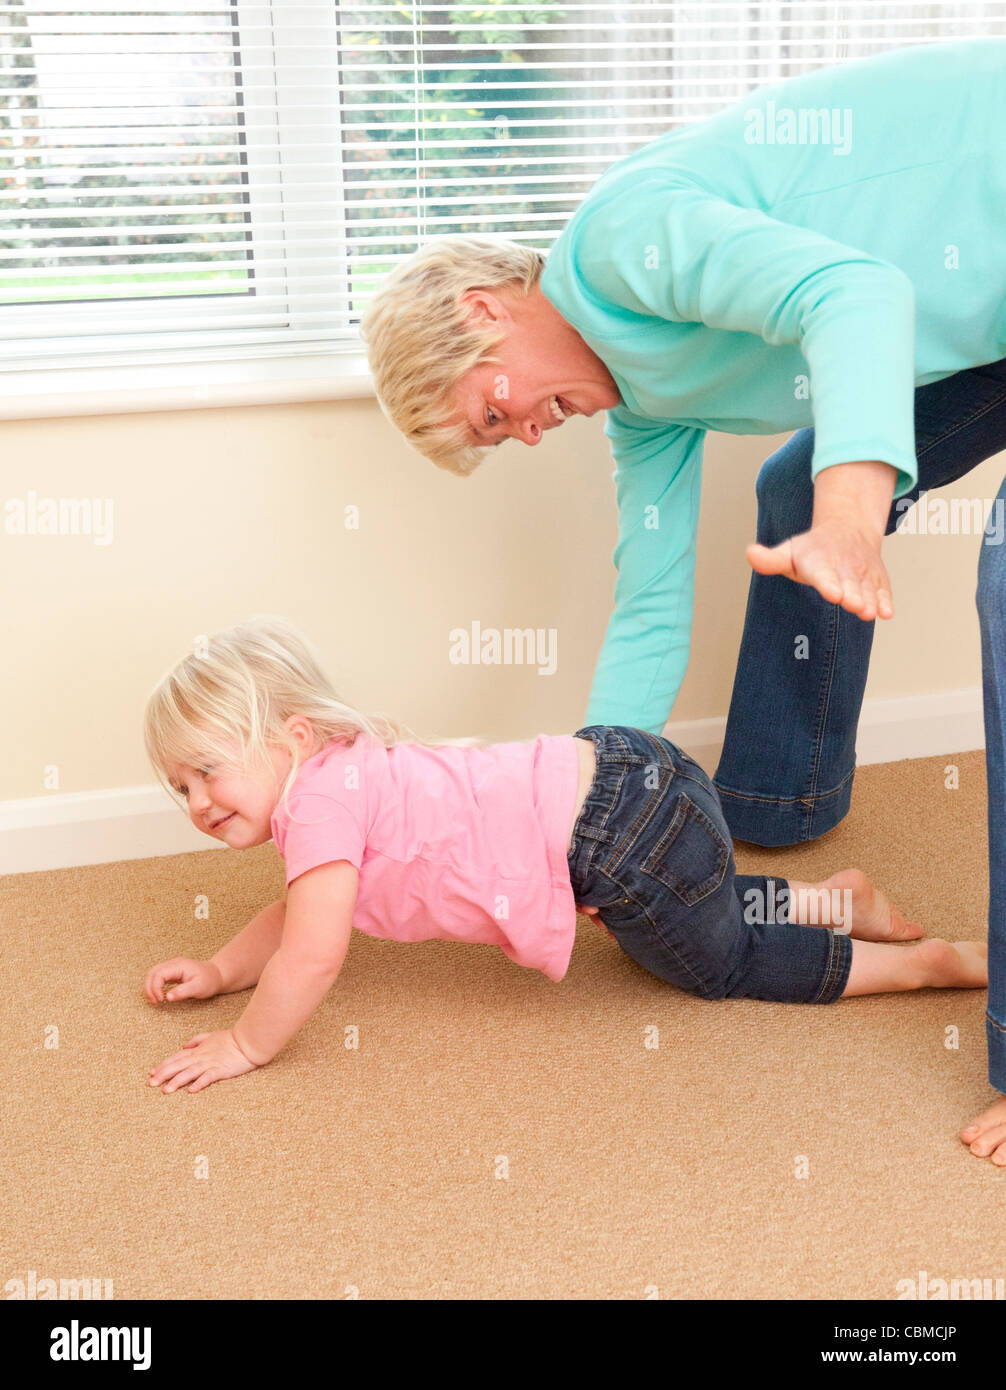 mother slapping / smacking daughter as punishmentStock Photo